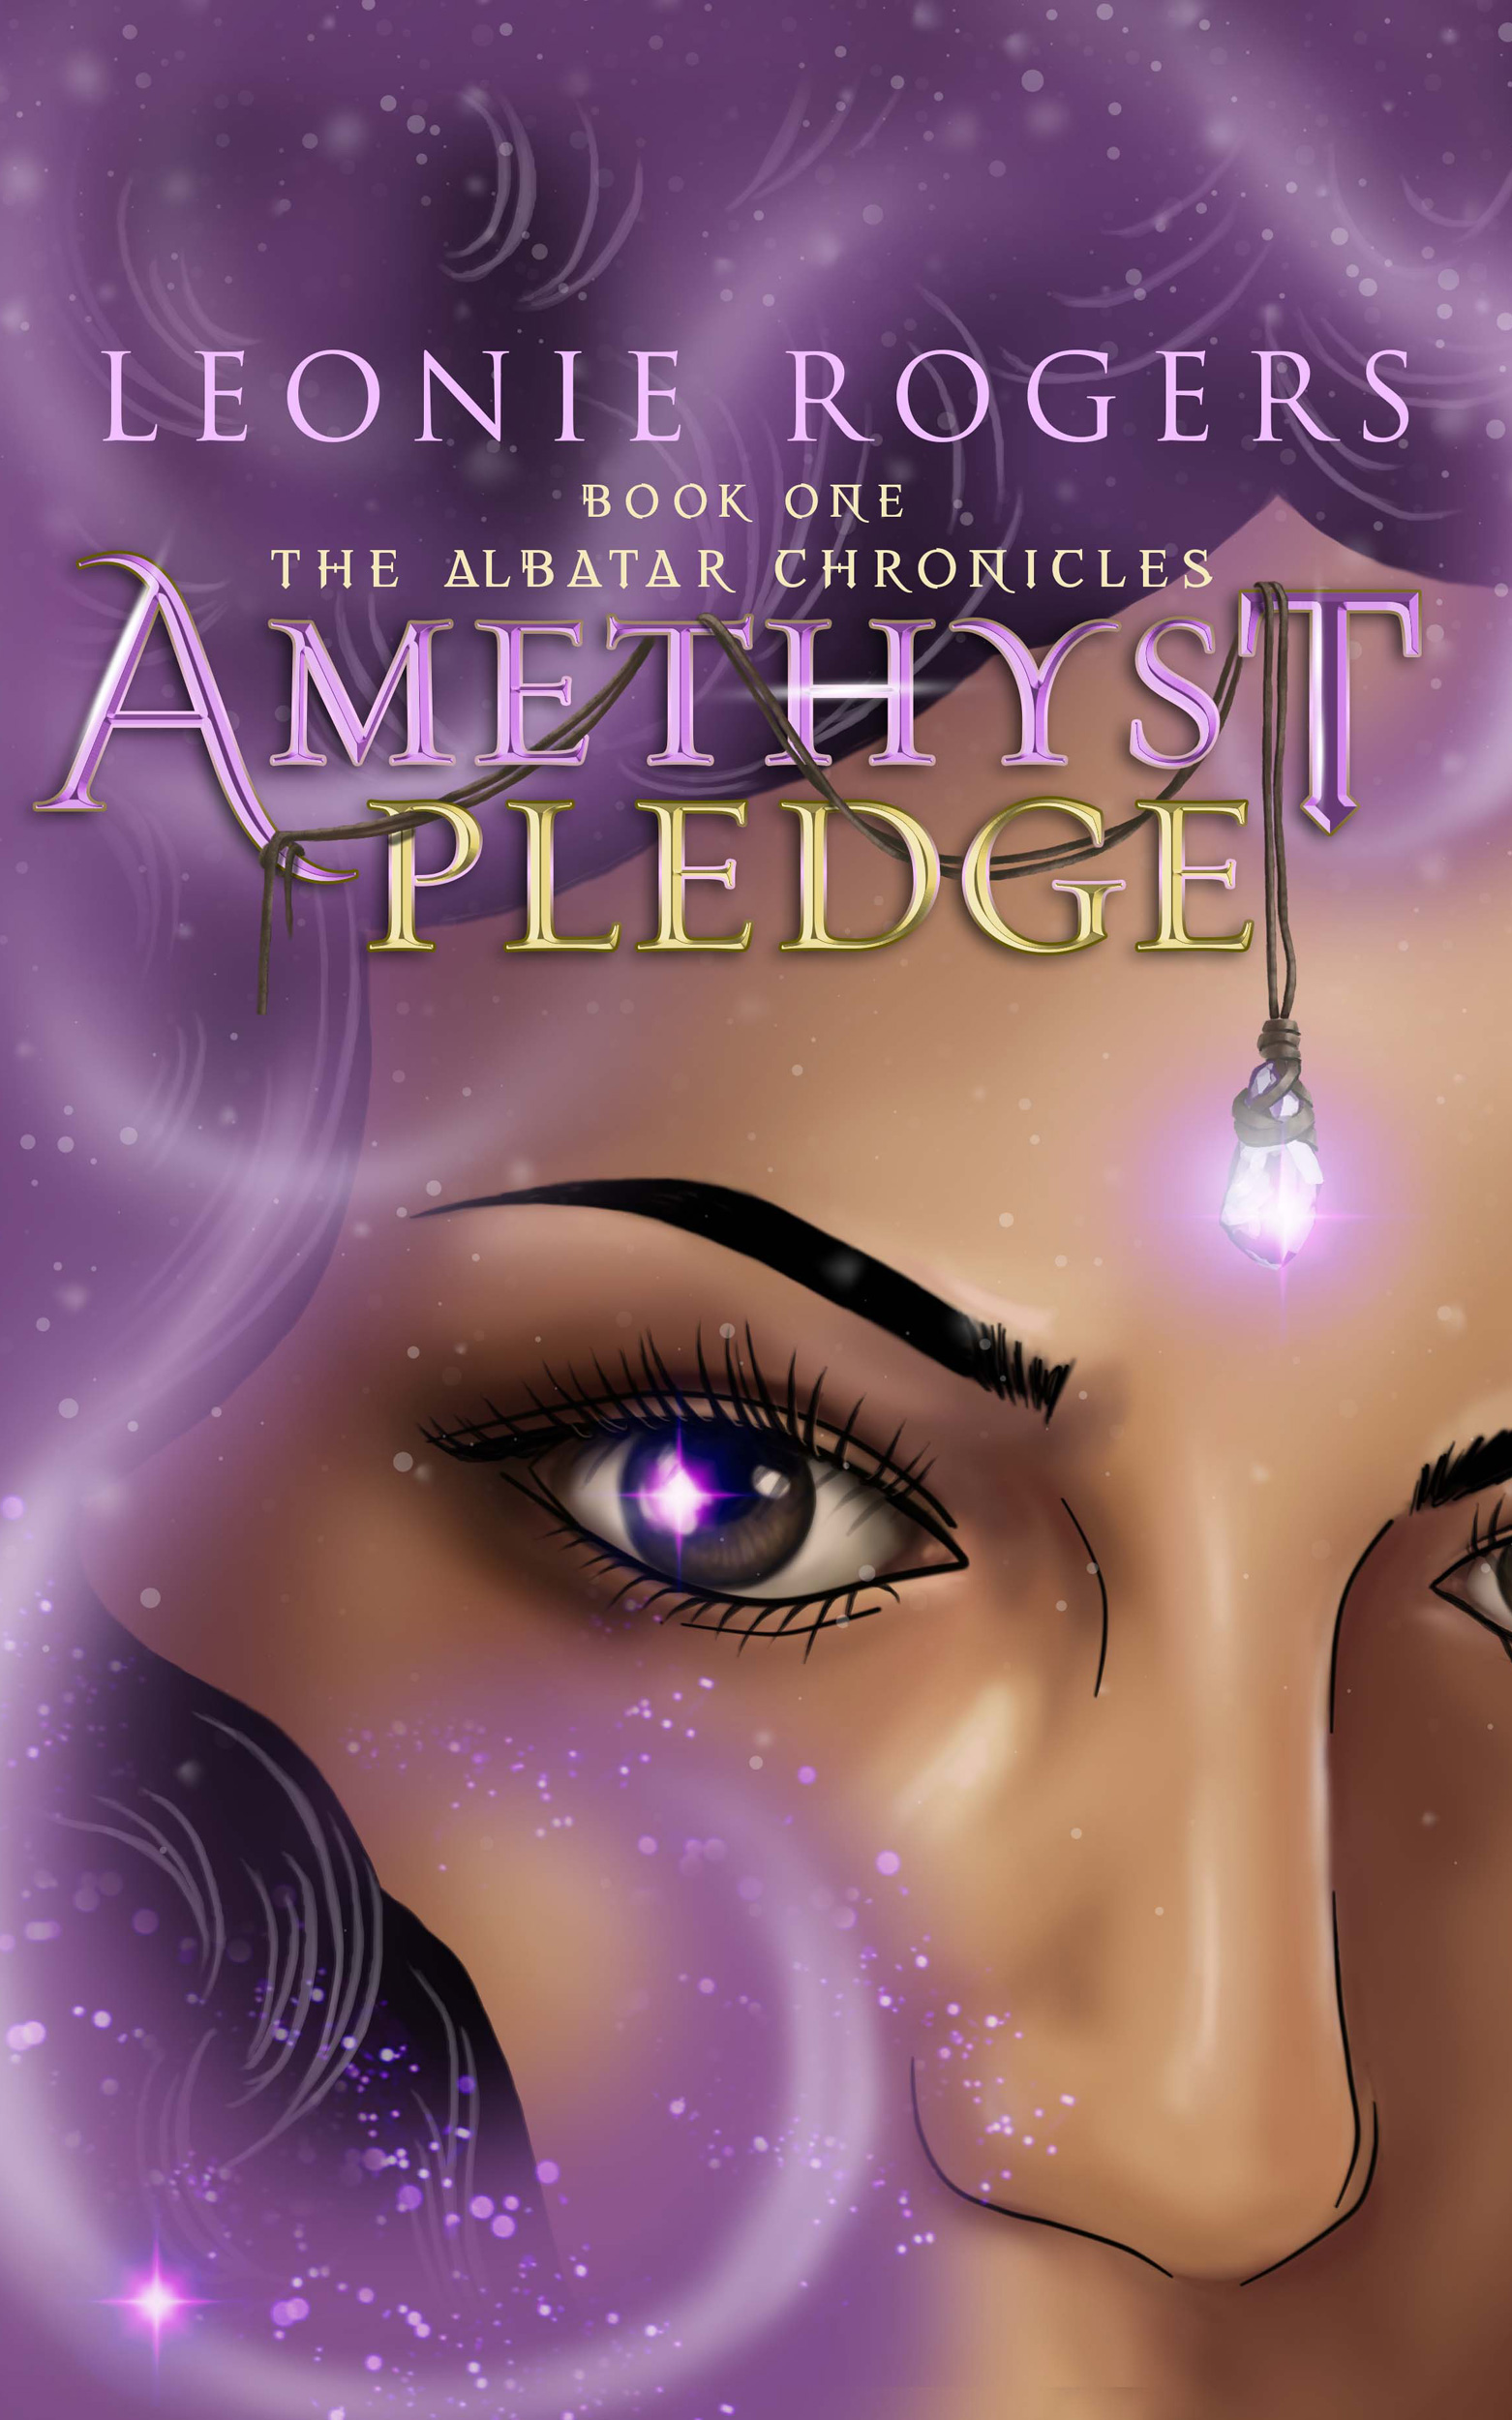 Amethyst Pledge